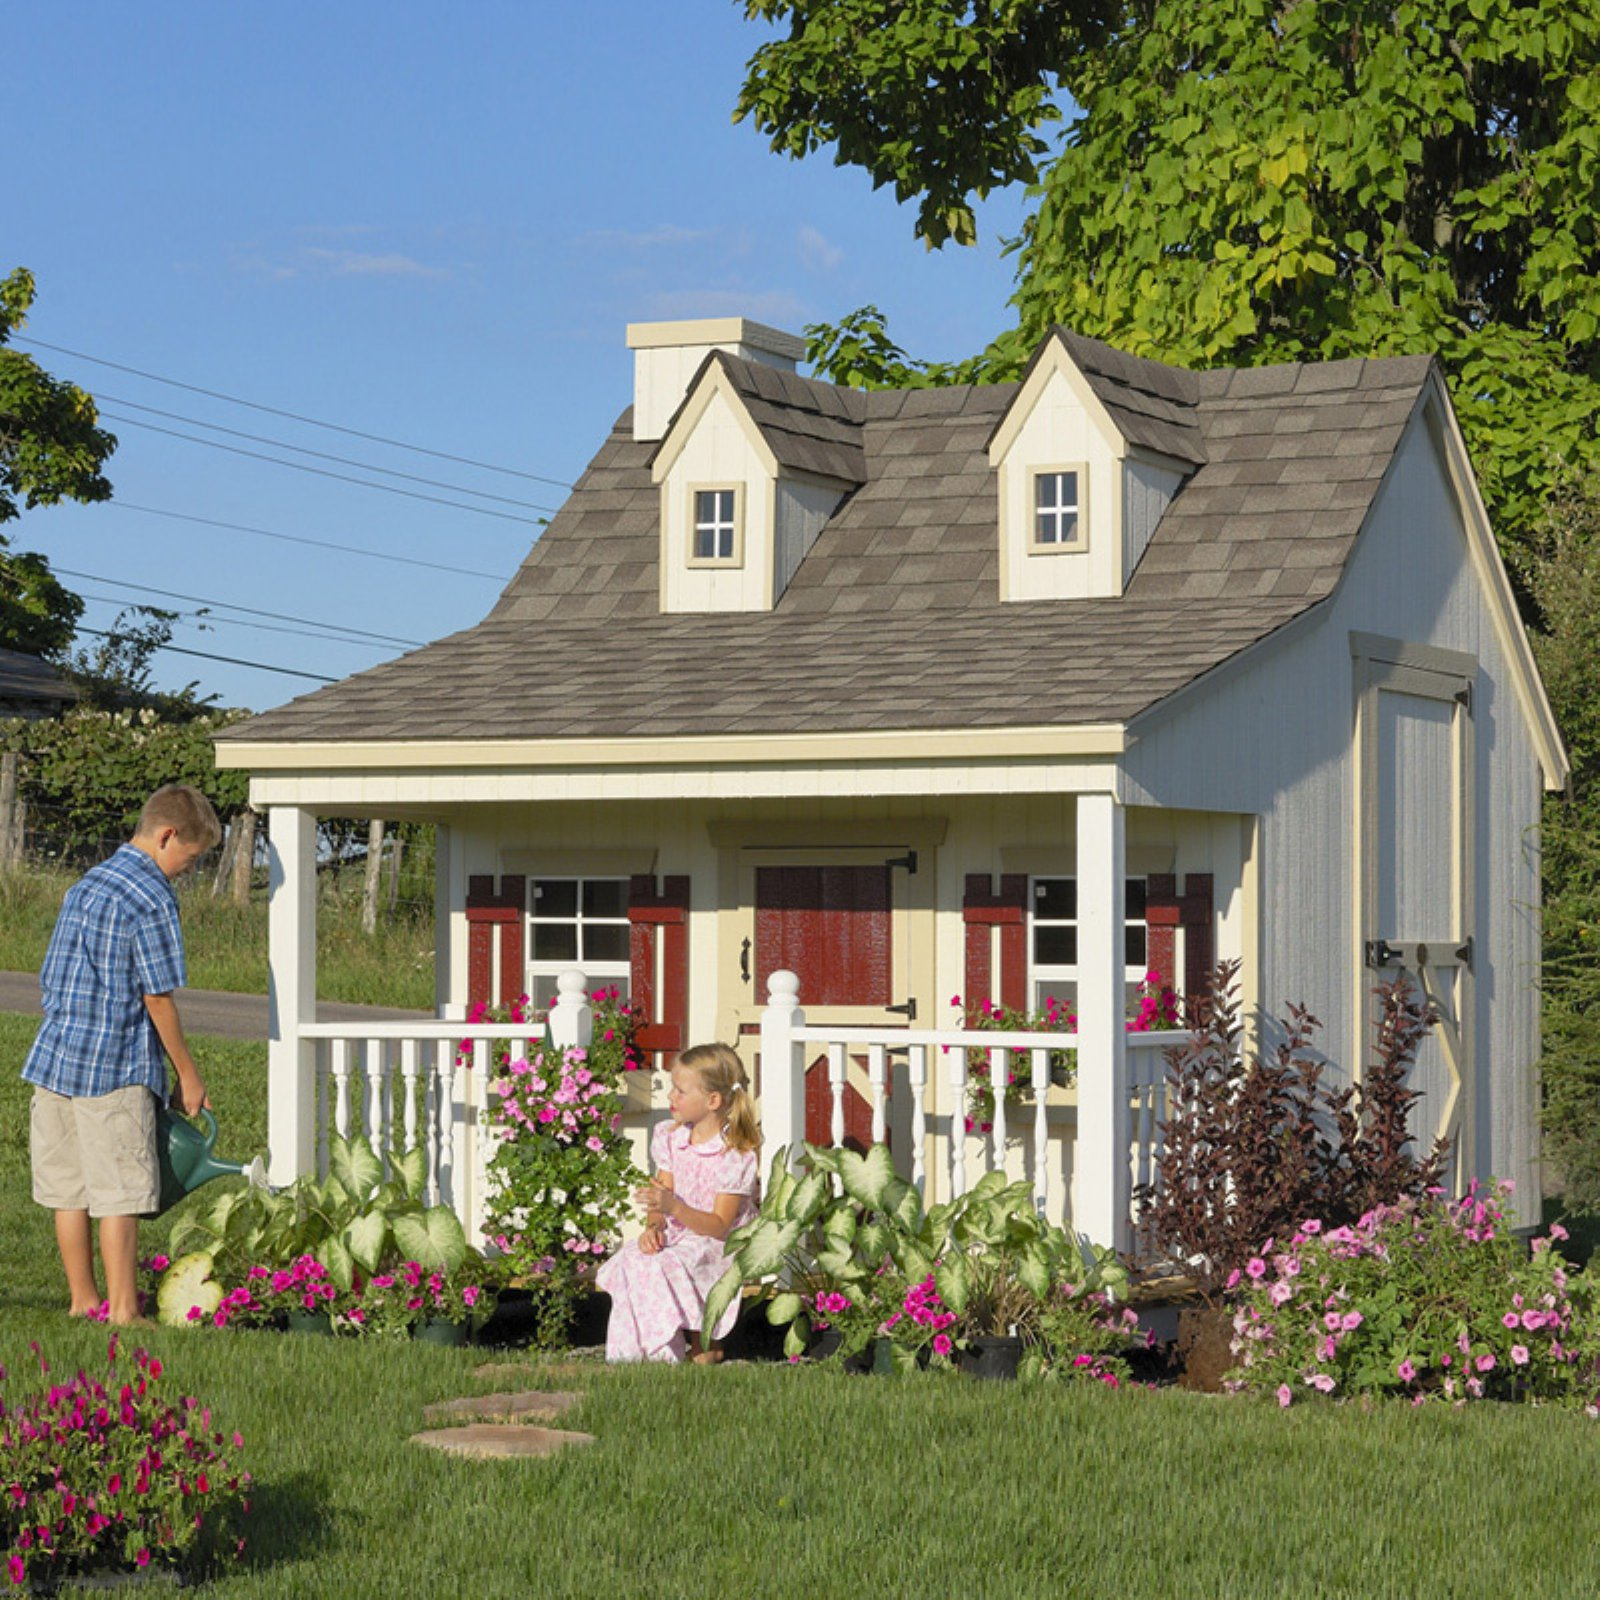 Little Cottage Pennfield Cottage 11 x 8 ft. Wood Playhouse by Little Cottage Company